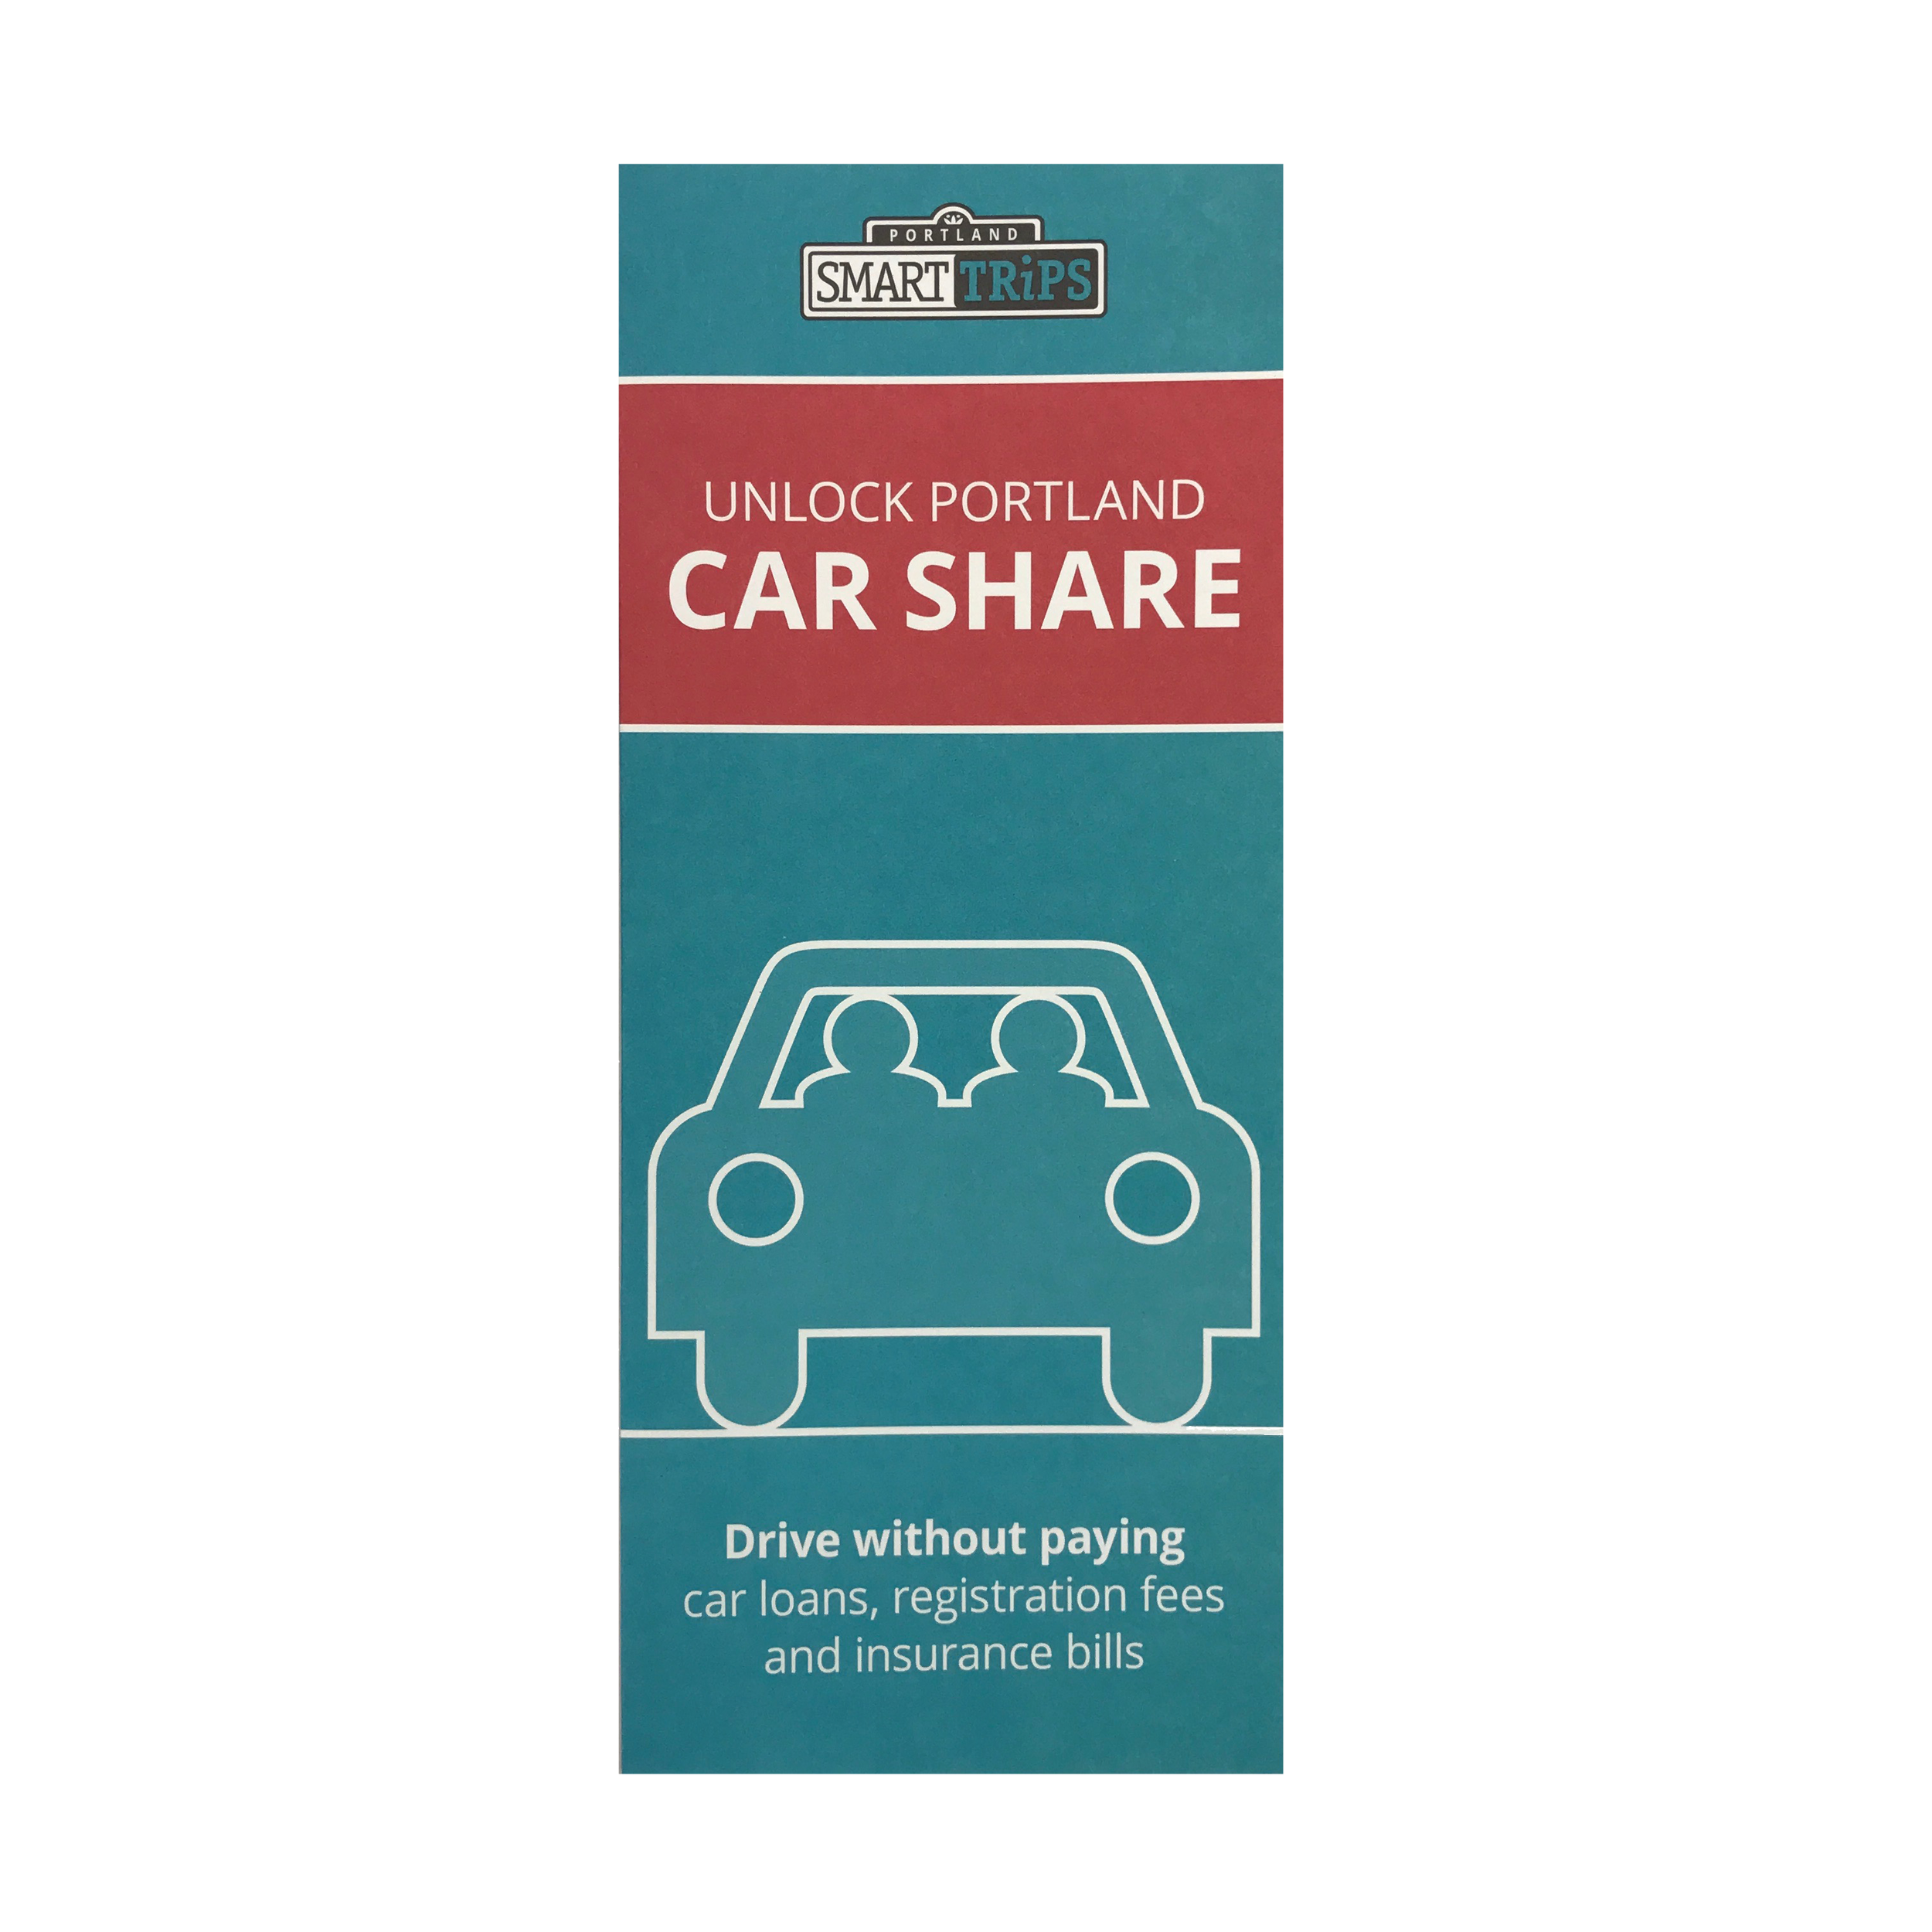 Unlock Portland Car Share